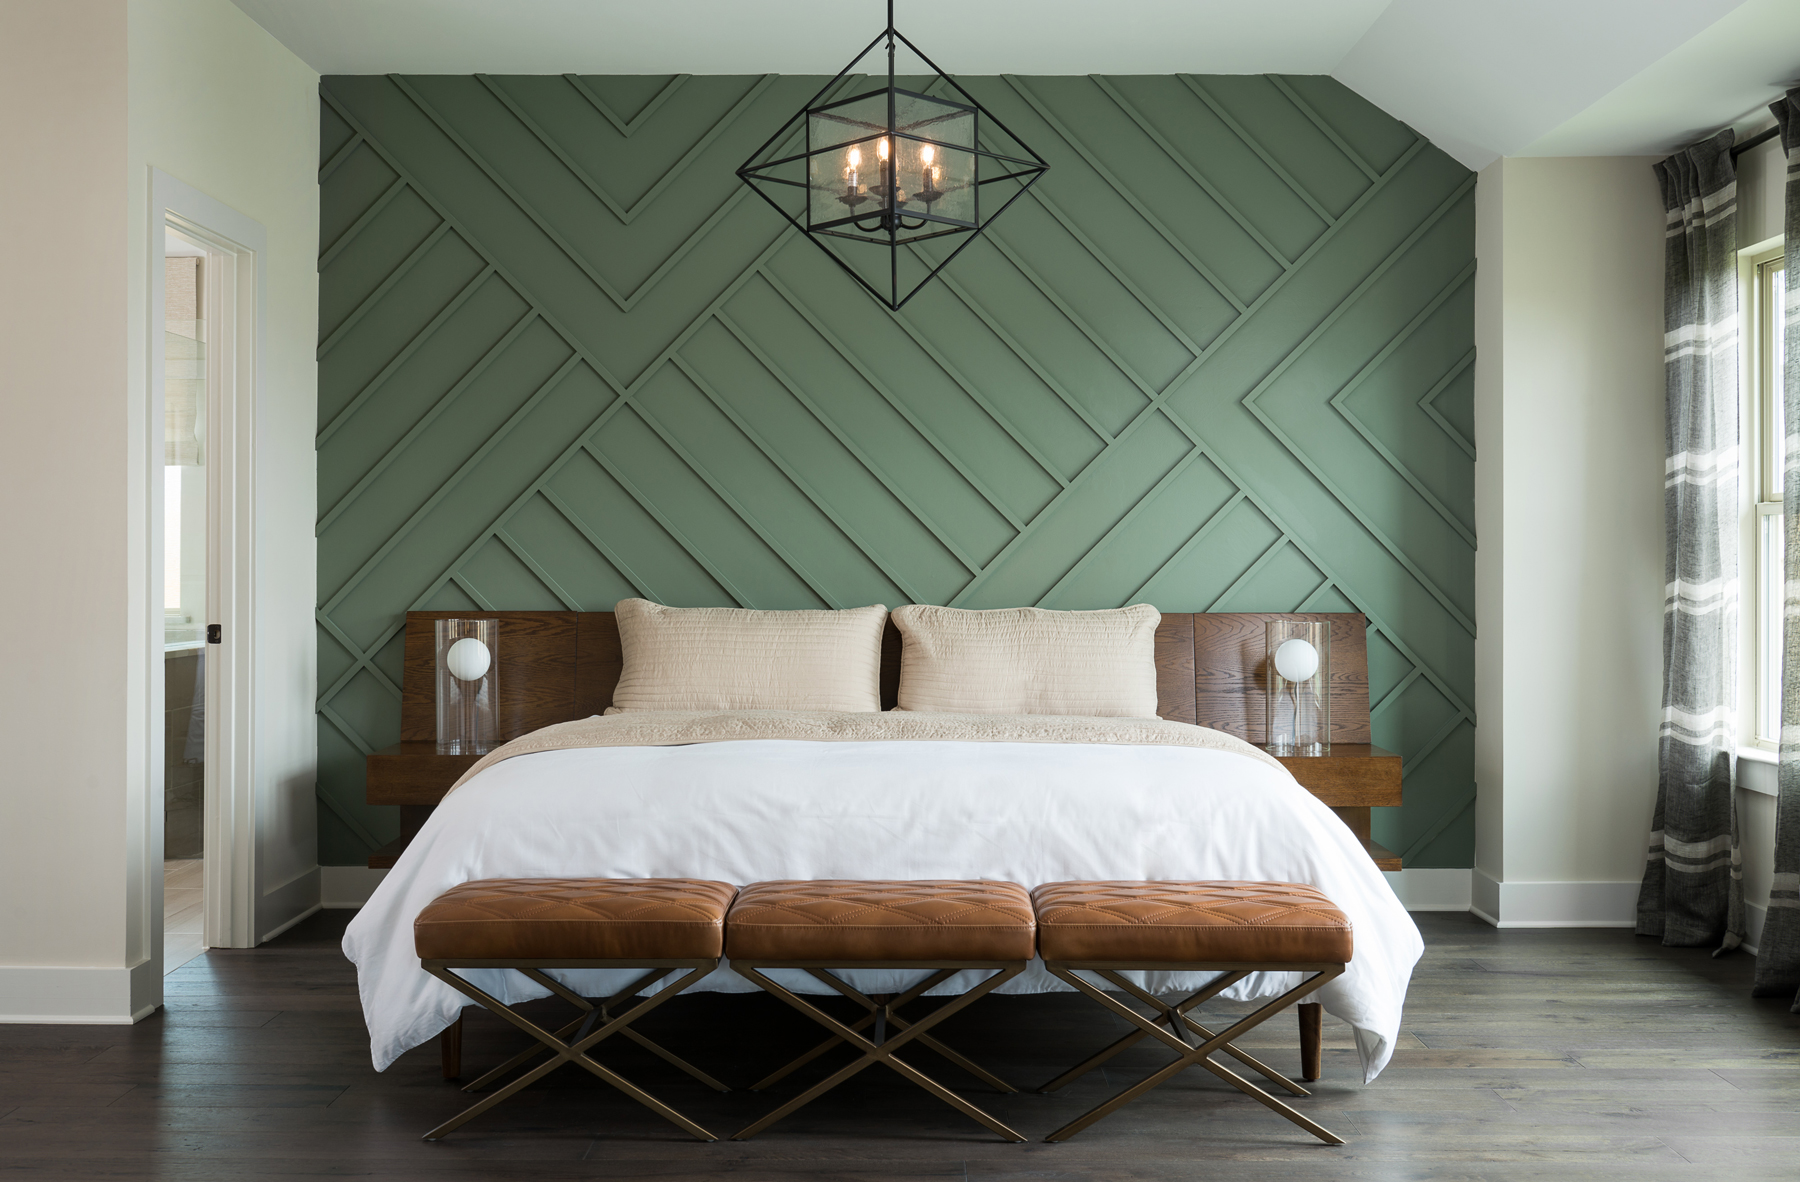 Board and batten interior ideas - bedroom accent wall